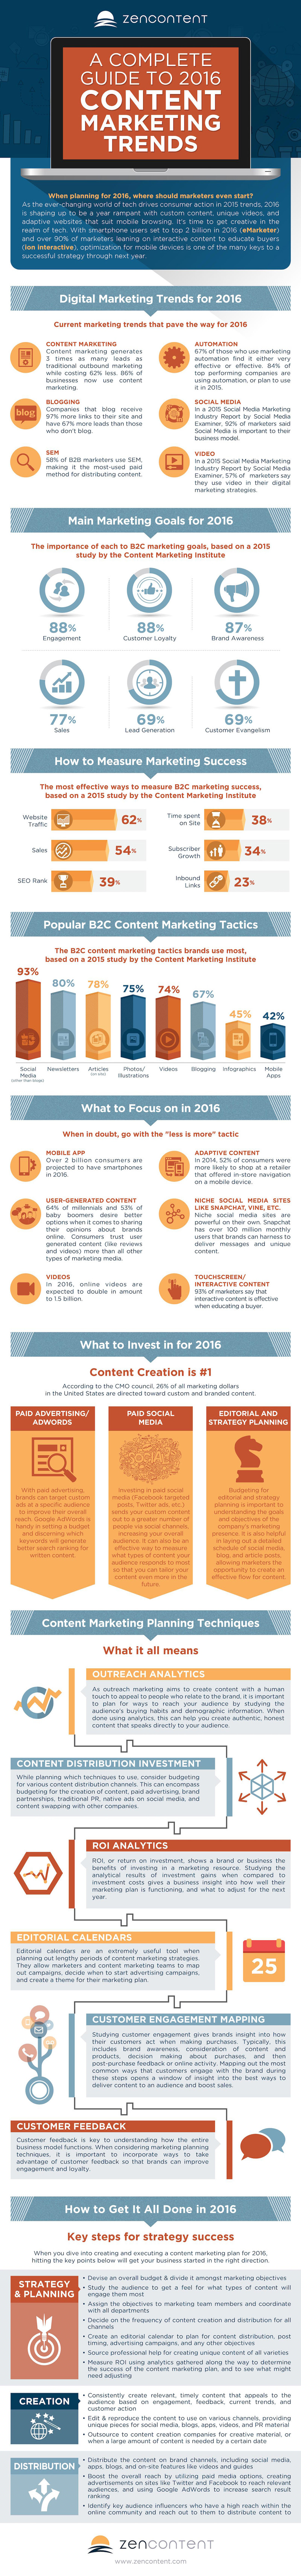 content-marketing-trends-for-2016